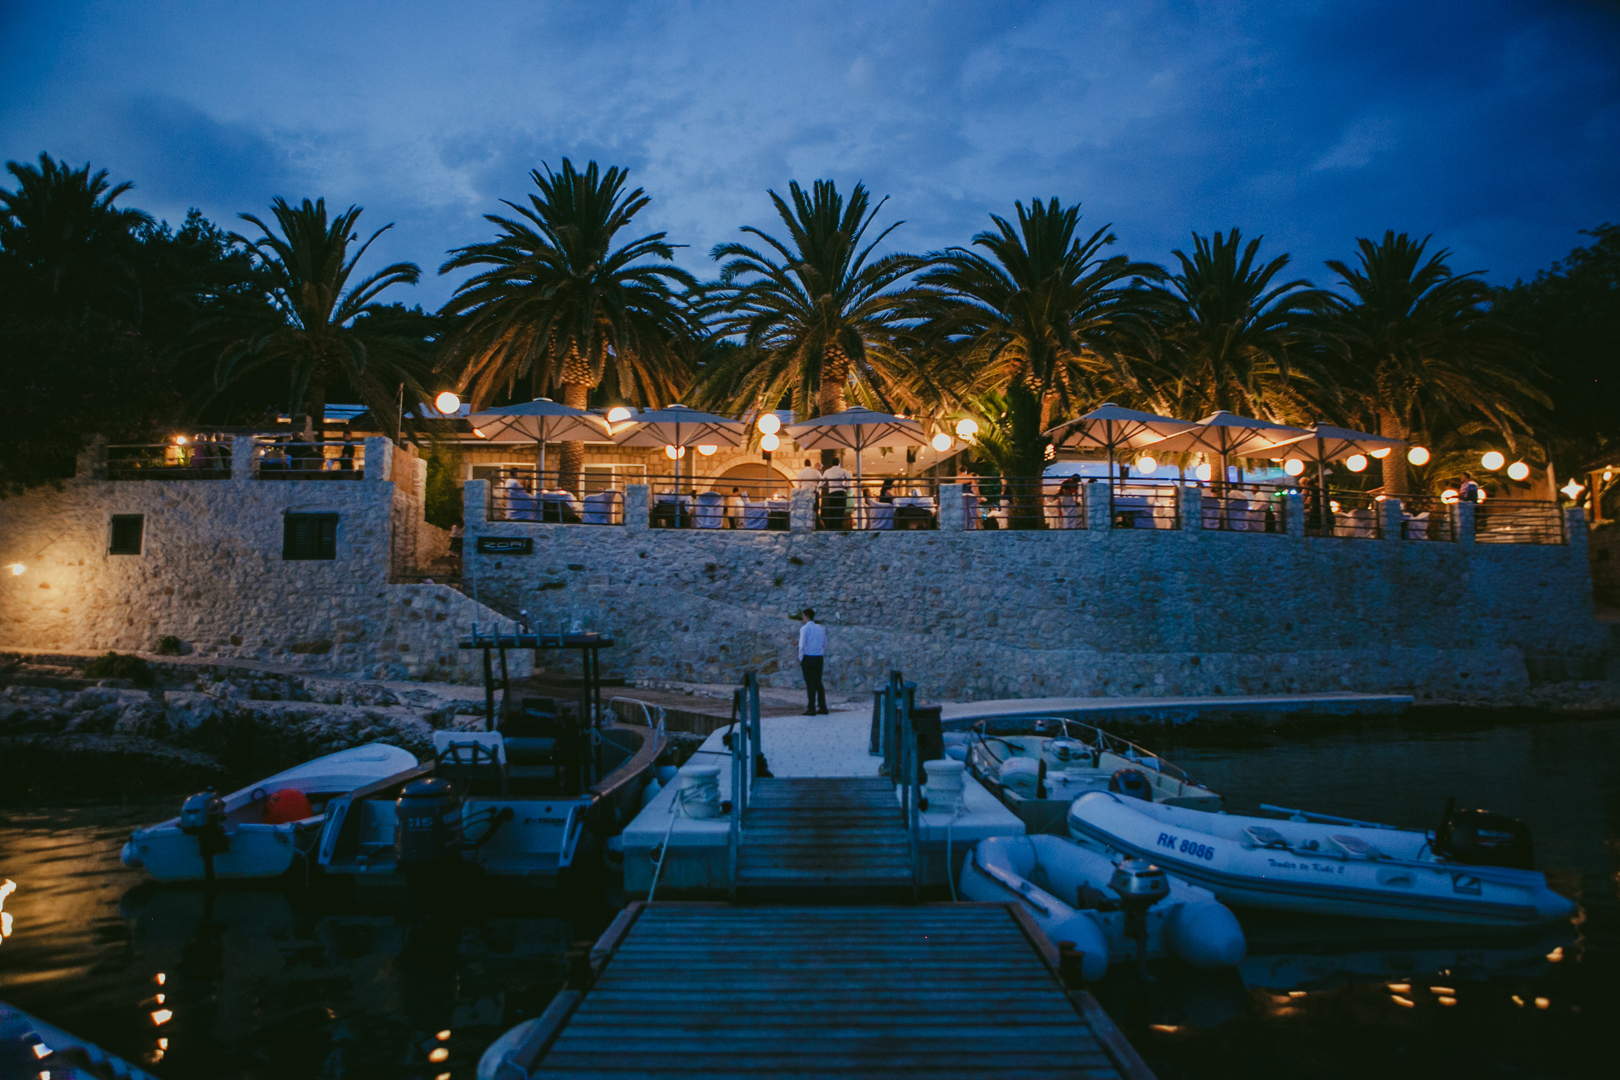 Front view of Zori restaurant, Hvar